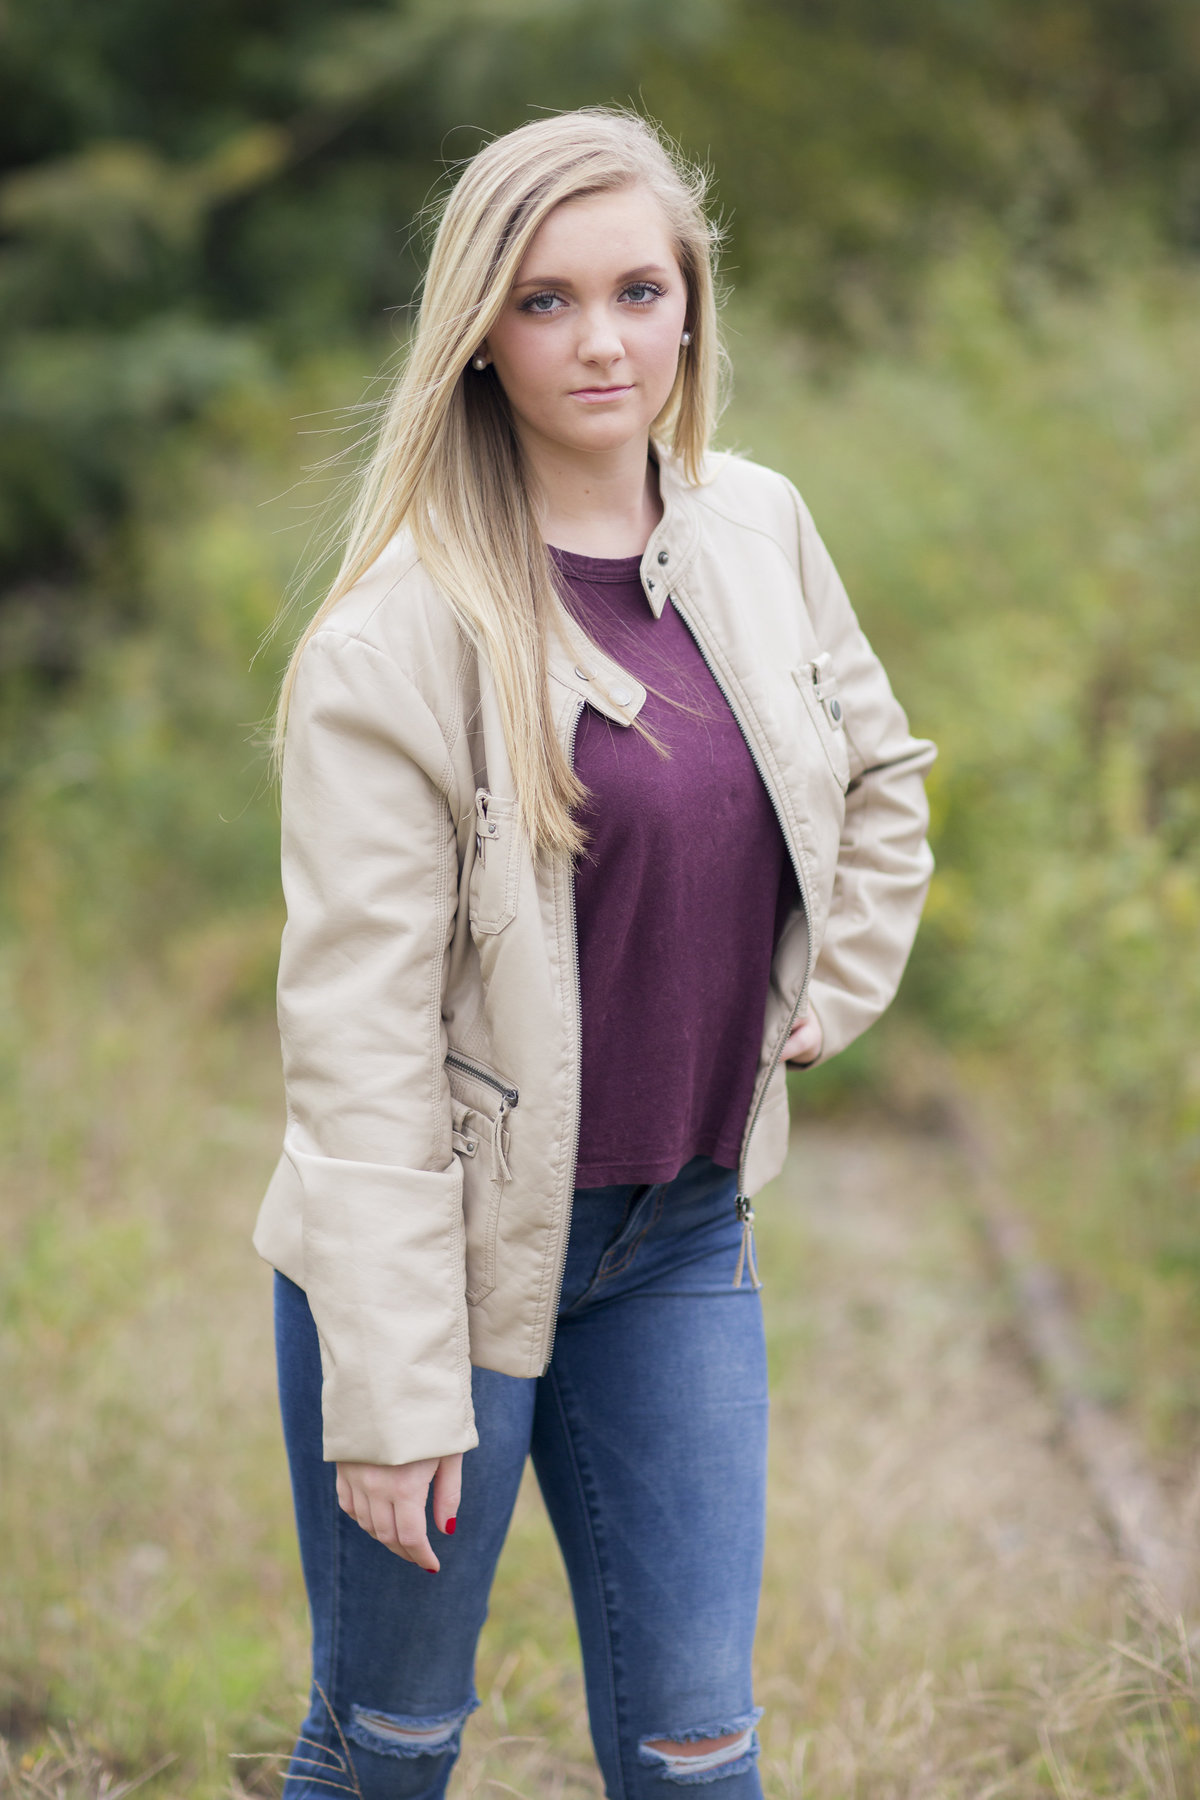 warner-robins-georgia-teen-photographer-jlfarmer-4016